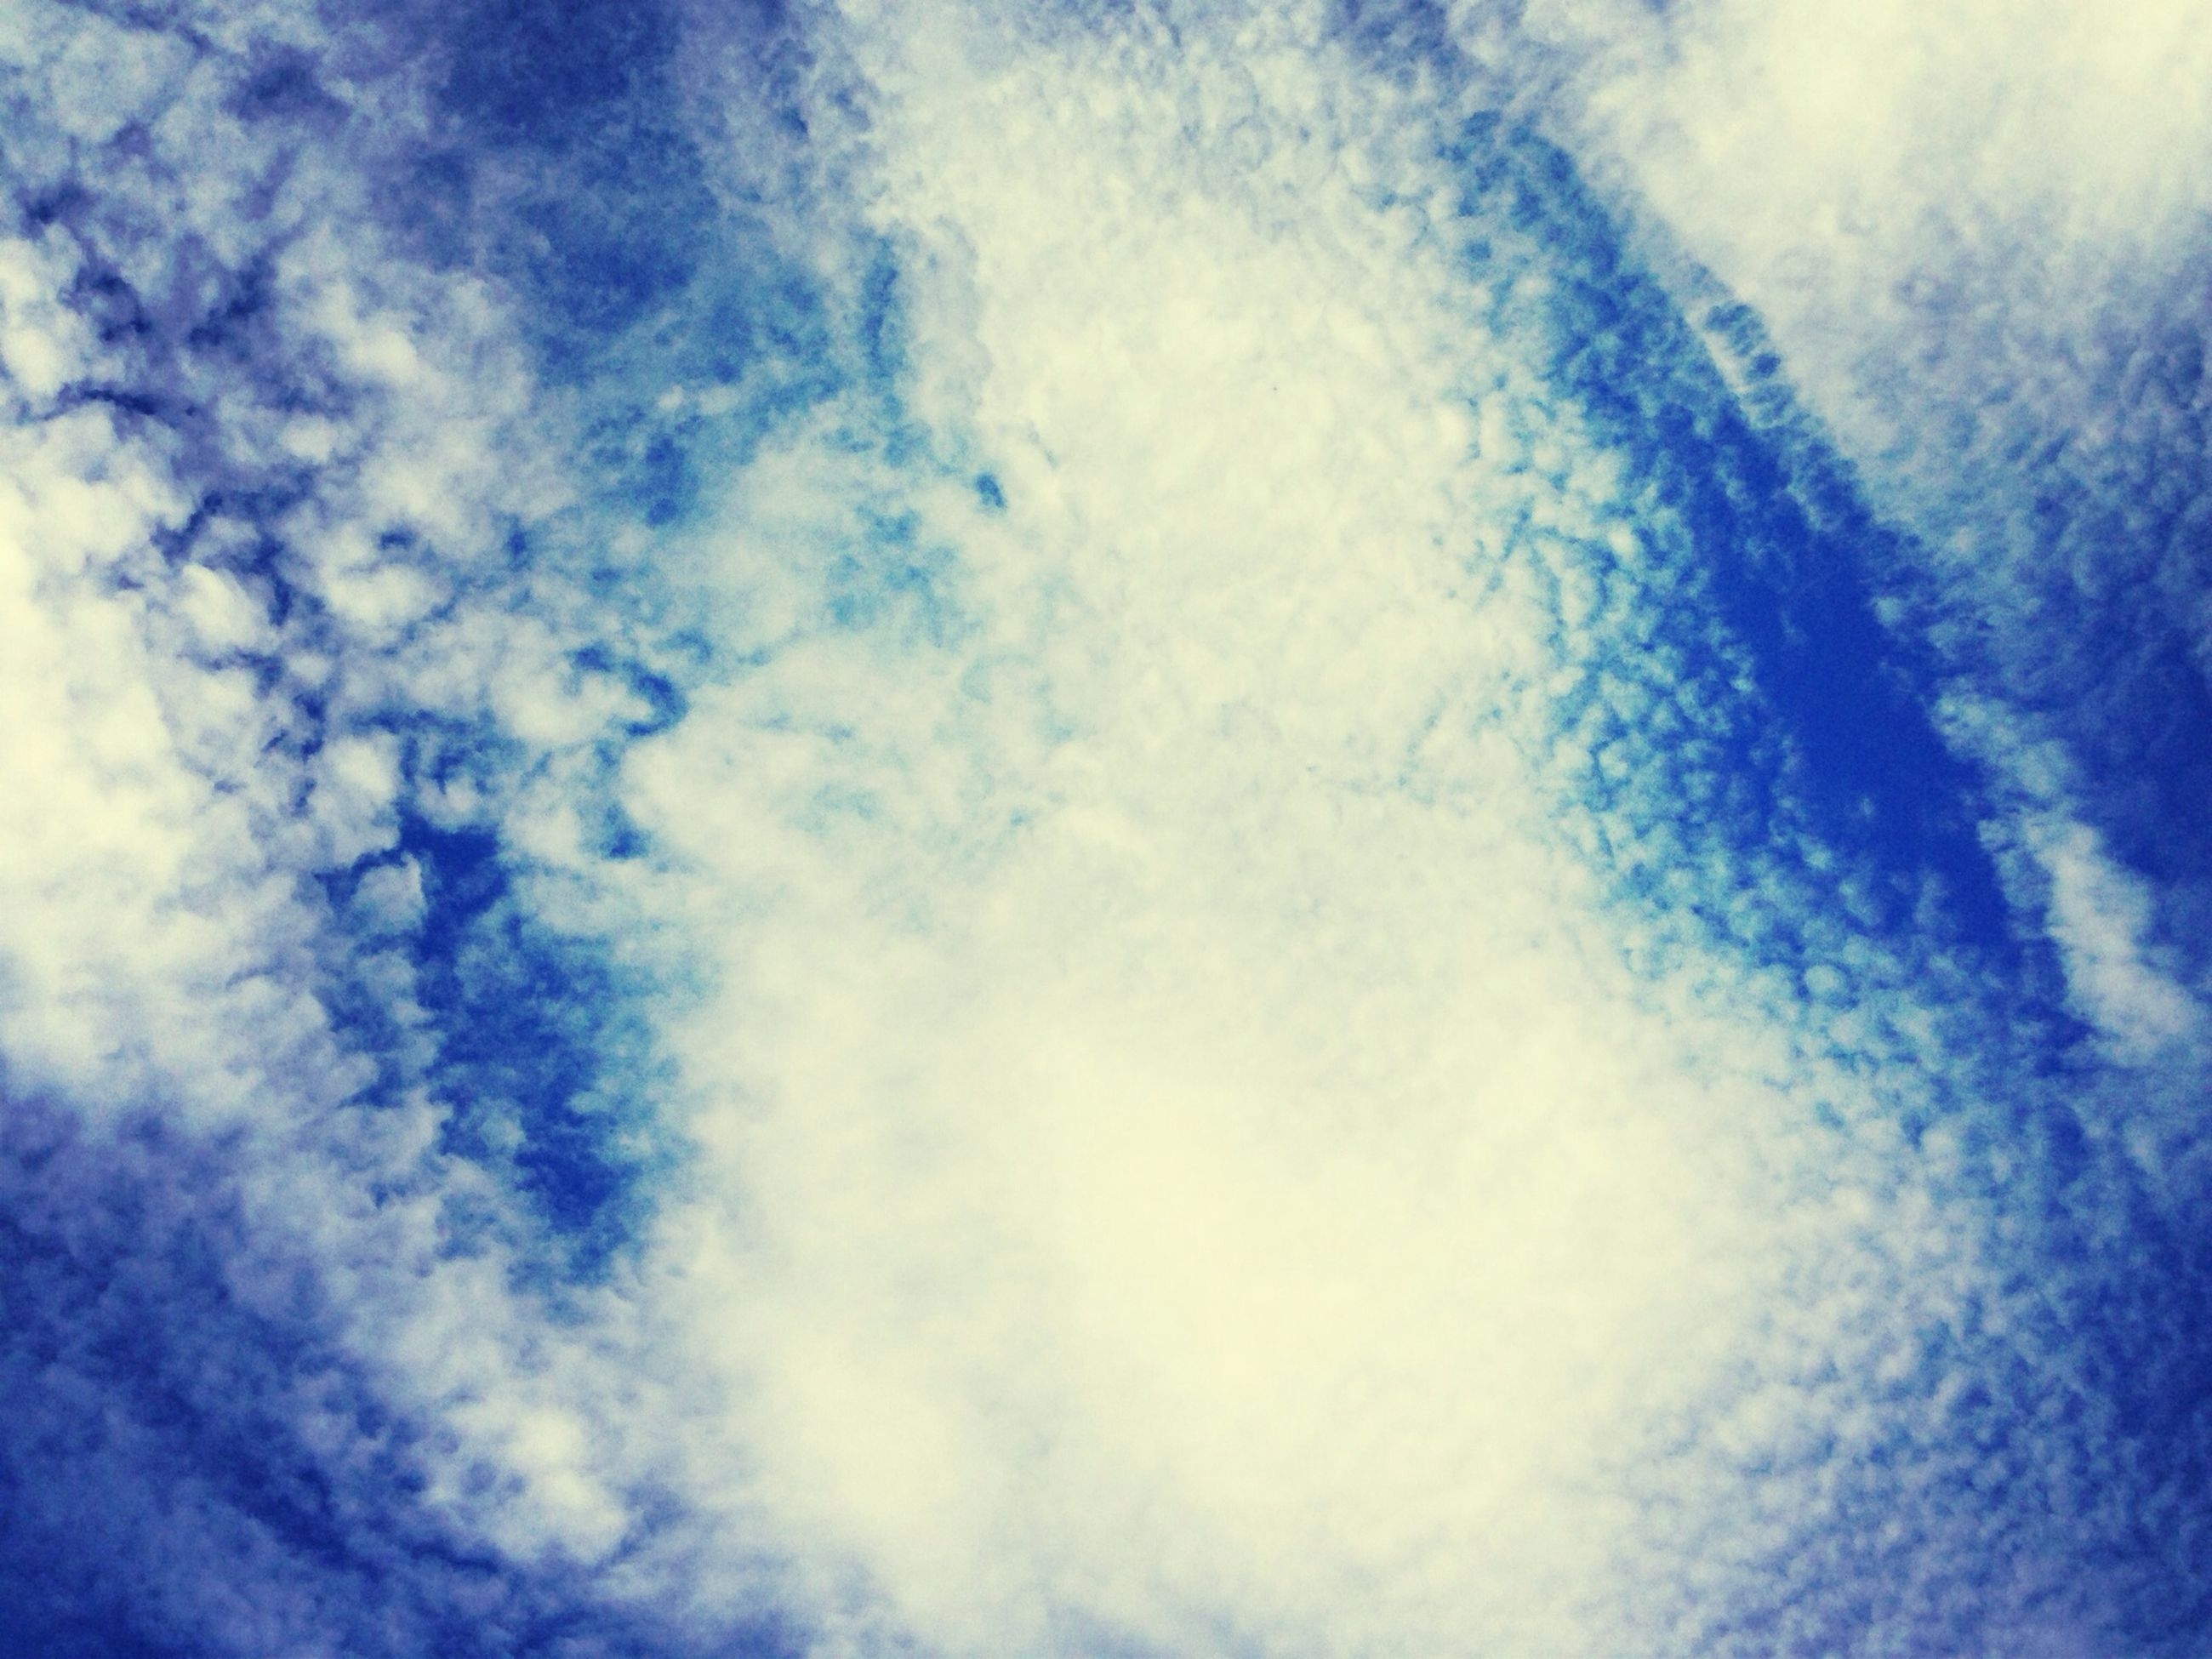 low angle view, sky, sky only, cloud - sky, backgrounds, full frame, beauty in nature, tranquility, cloudy, blue, nature, scenics, cloudscape, tranquil scene, cloud, white color, idyllic, weather, no people, outdoors